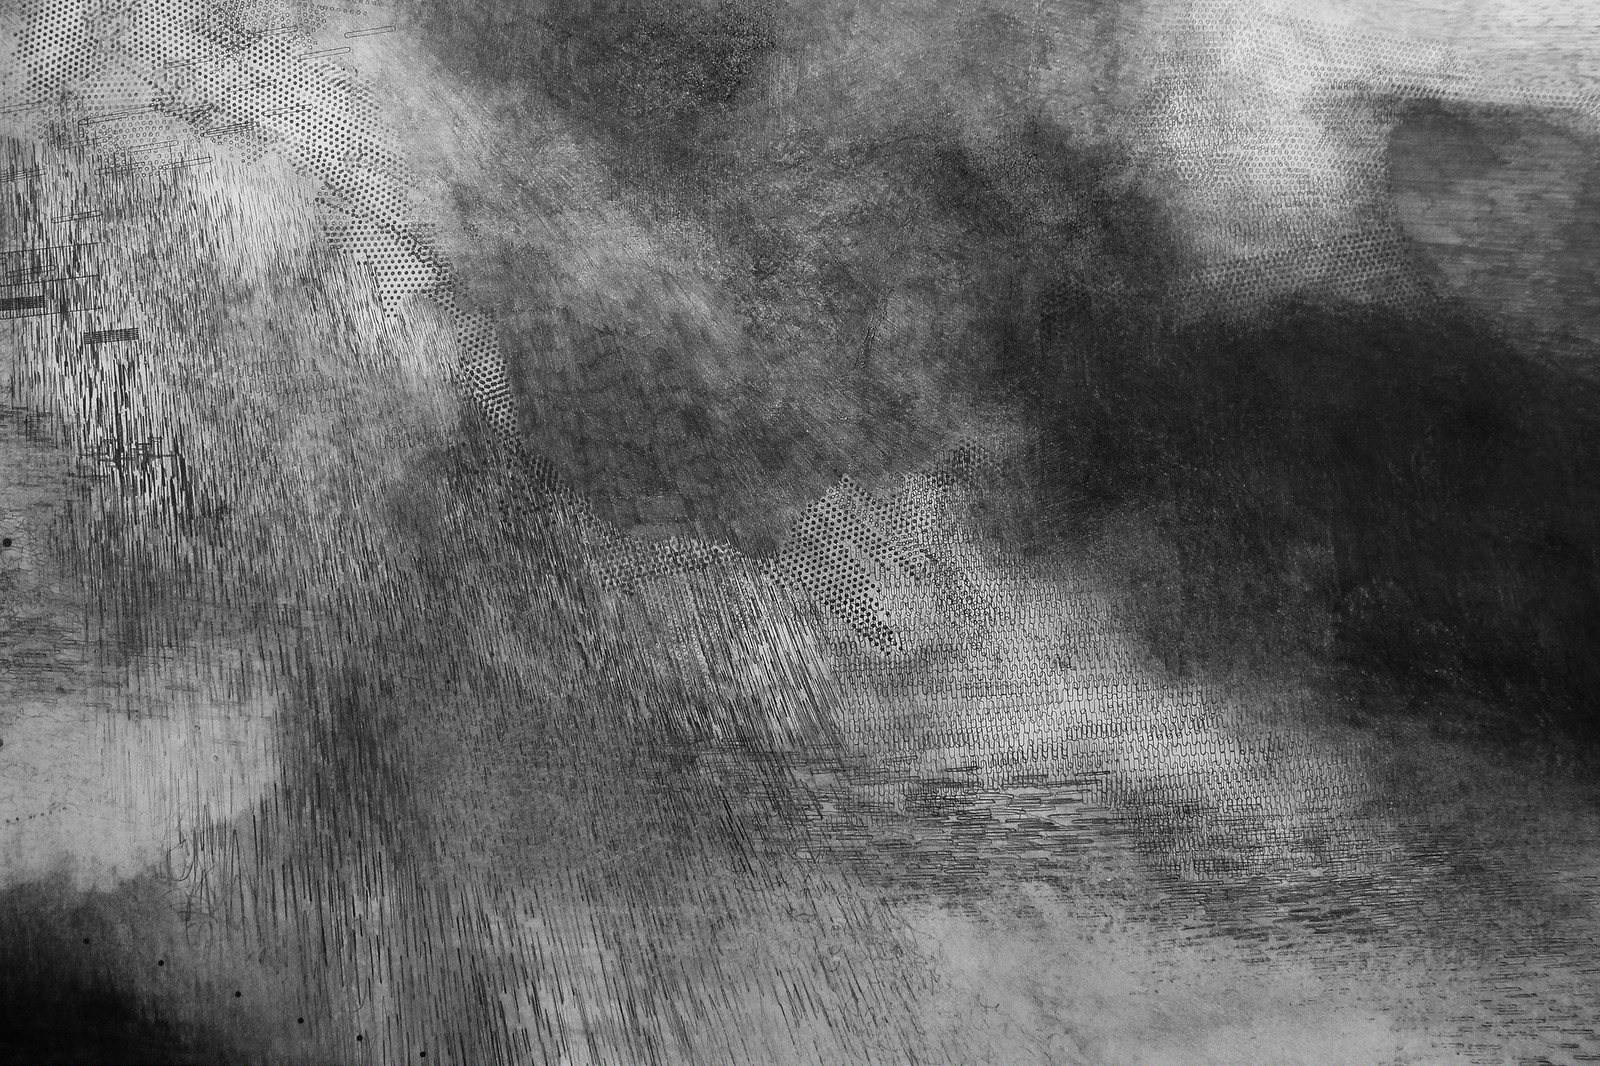 Emma McNally,  Choral Field 9 , 2014 (detail), graphite on paper, 215 x 304 cm. Courtesy the artist.